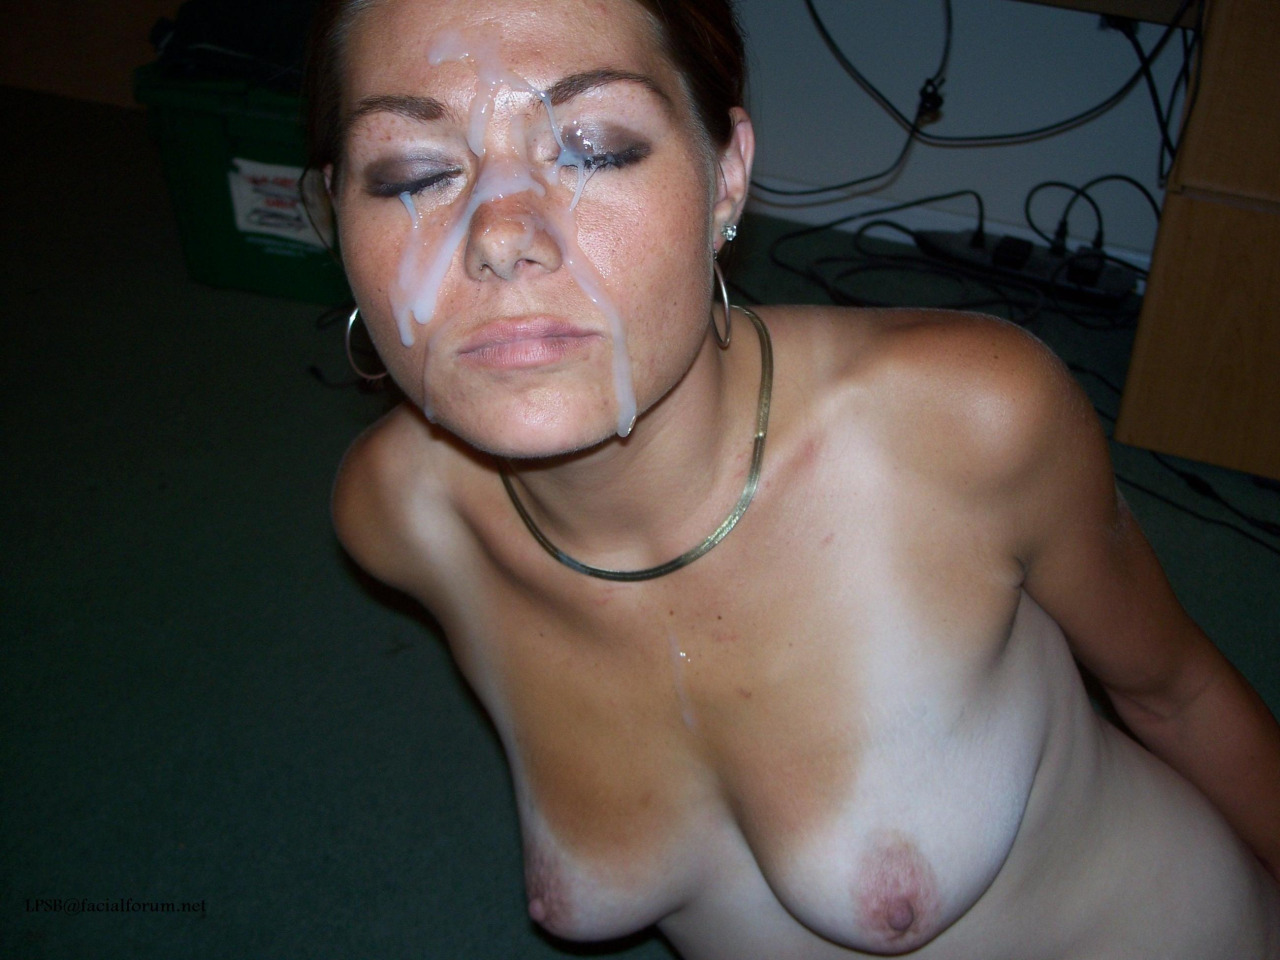 sexe nu en photo de cougar du 68